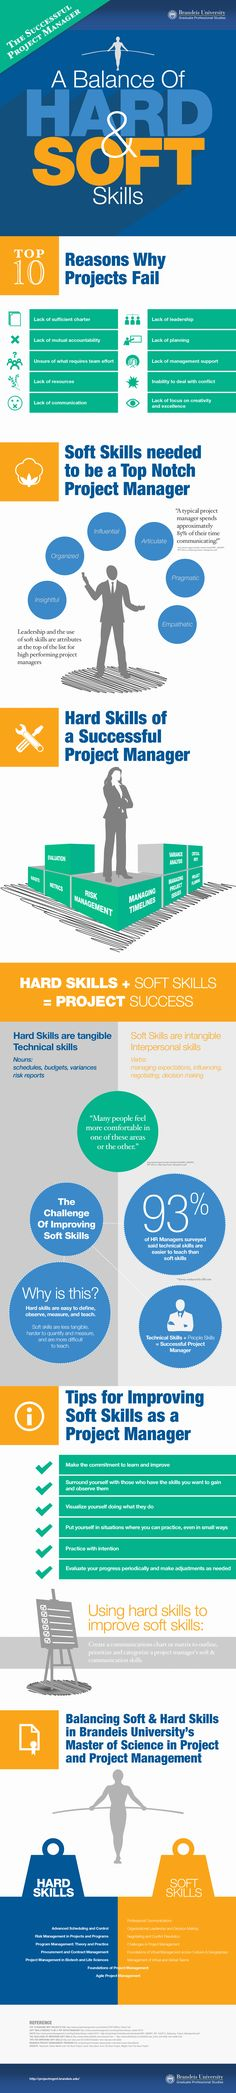 Successful project management balances hard and soft skills (infographic)